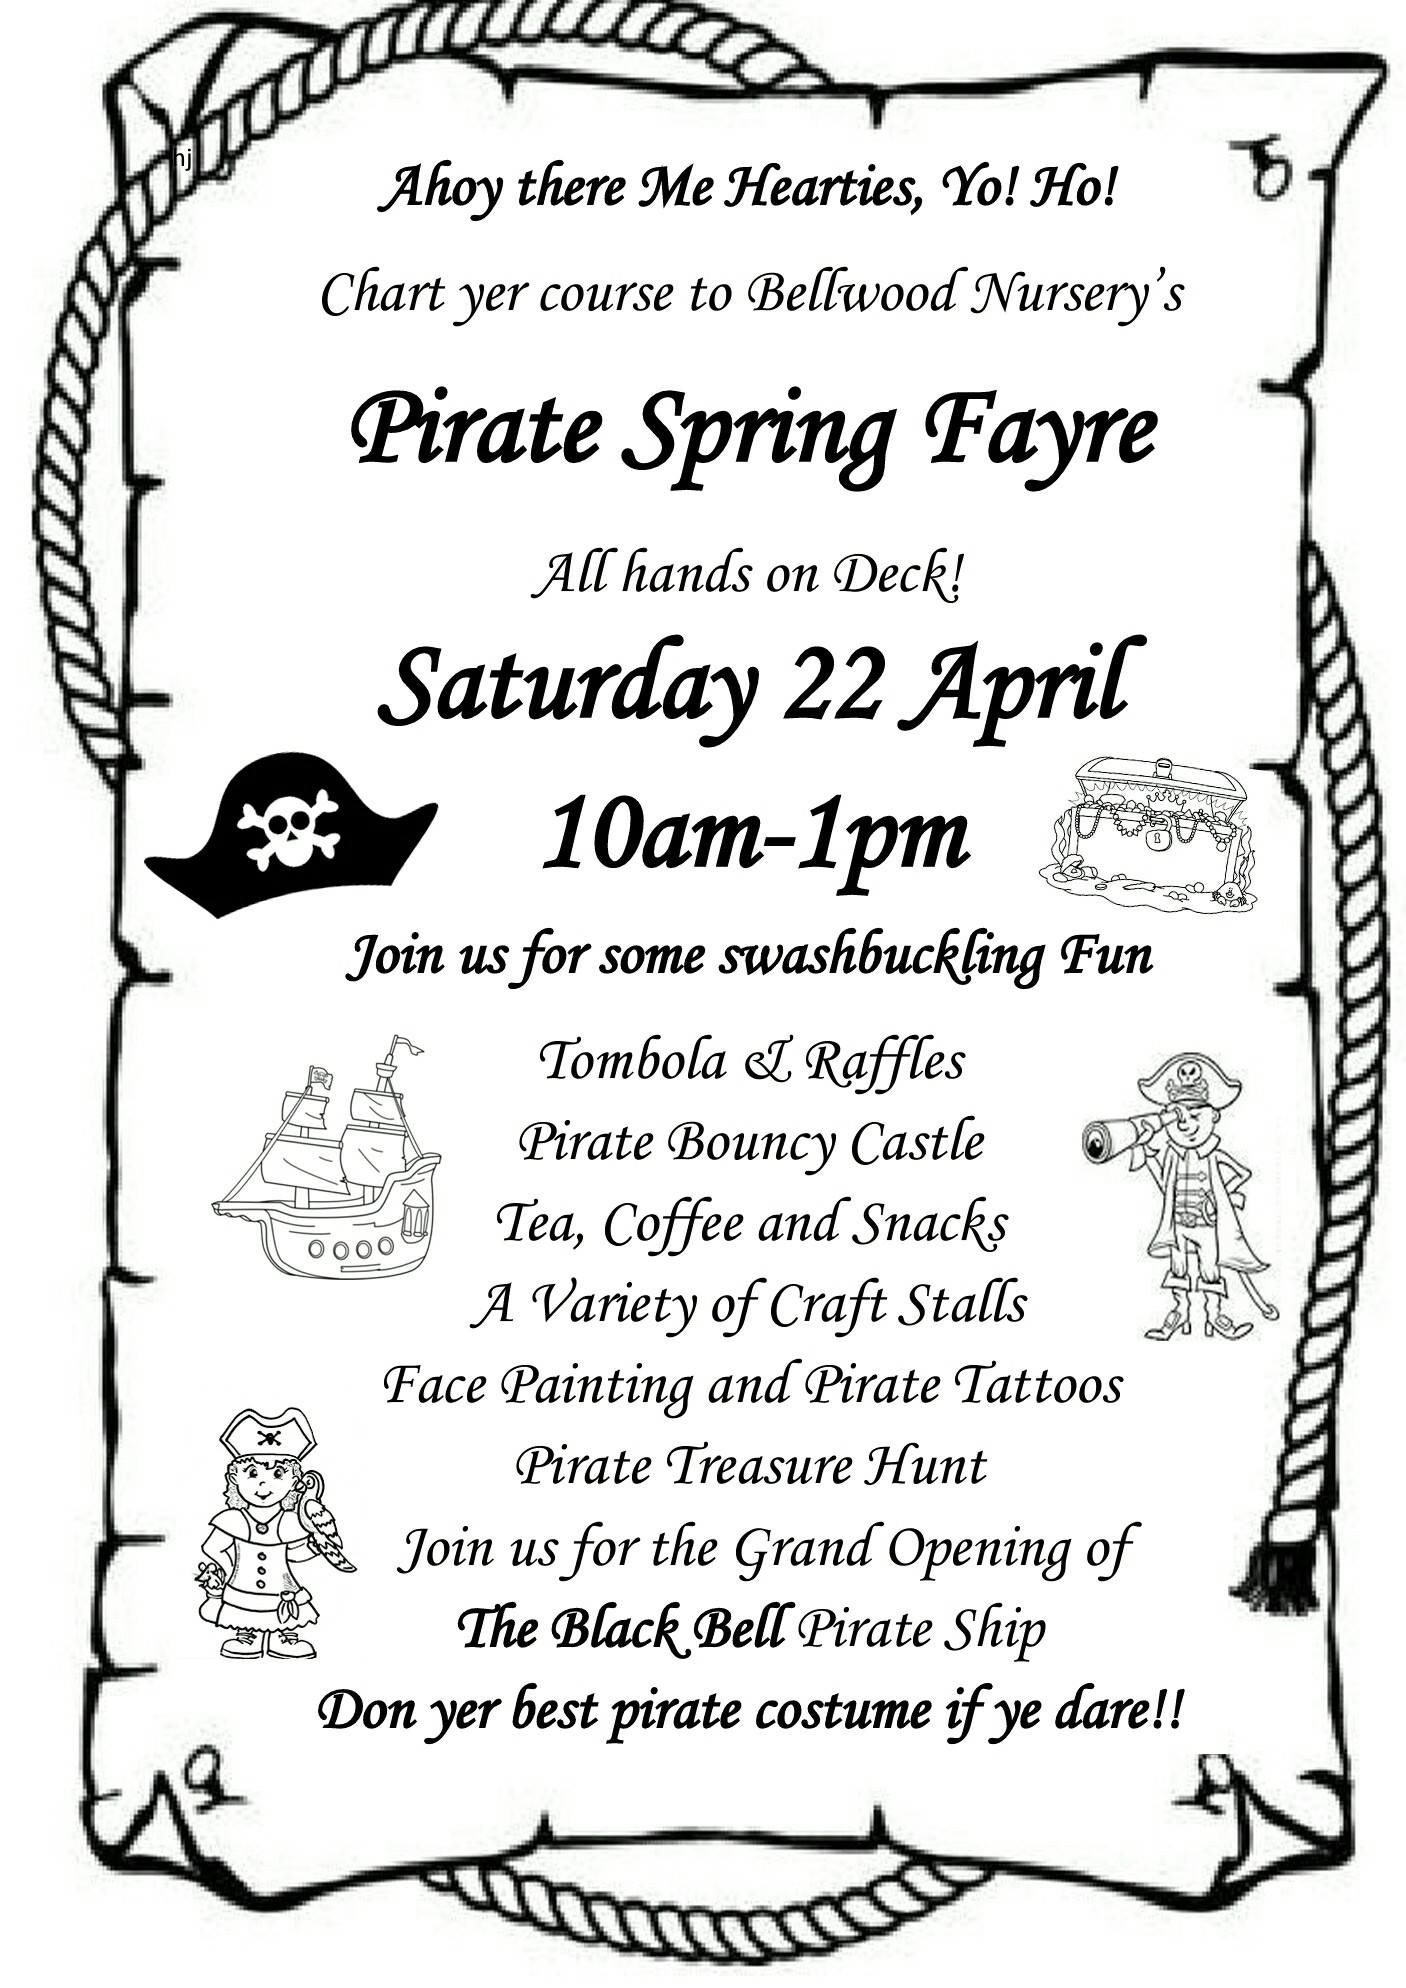 Pirate spring fayre